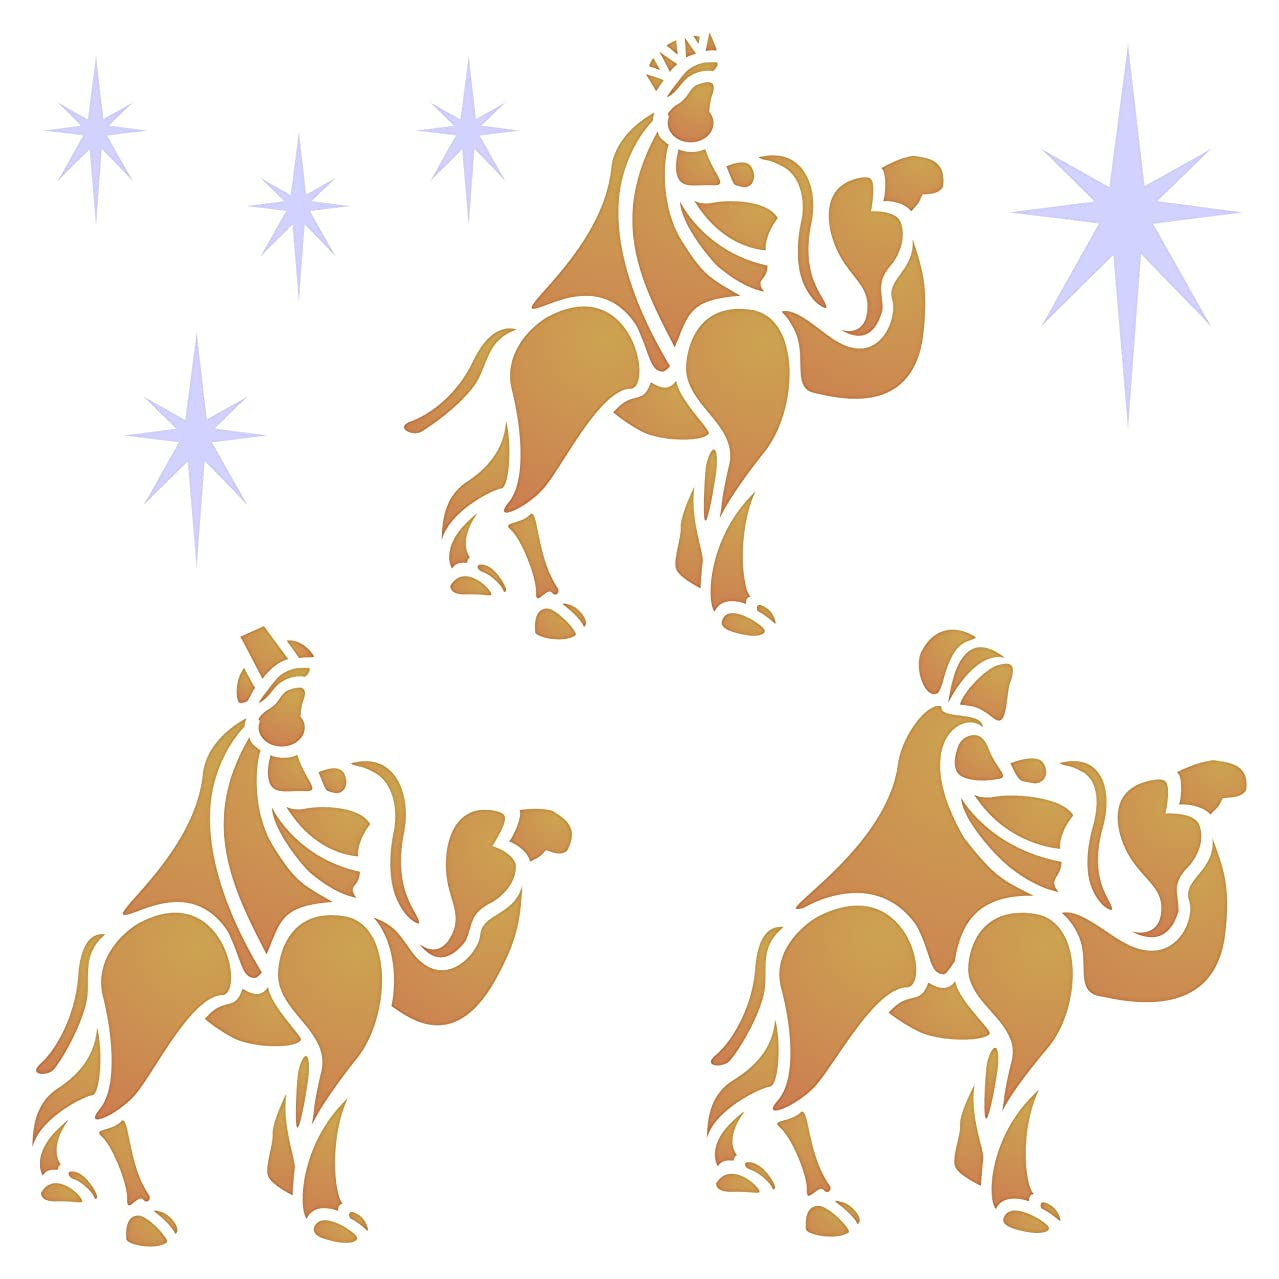 Wise Men Stencil - 8.5 x 8.5 inch (L) - Reusable Christmas Nativity Wall Stencils for Painting - Use on Paper Projects Walls Floors Fabric Furniture Glass Wood etc.